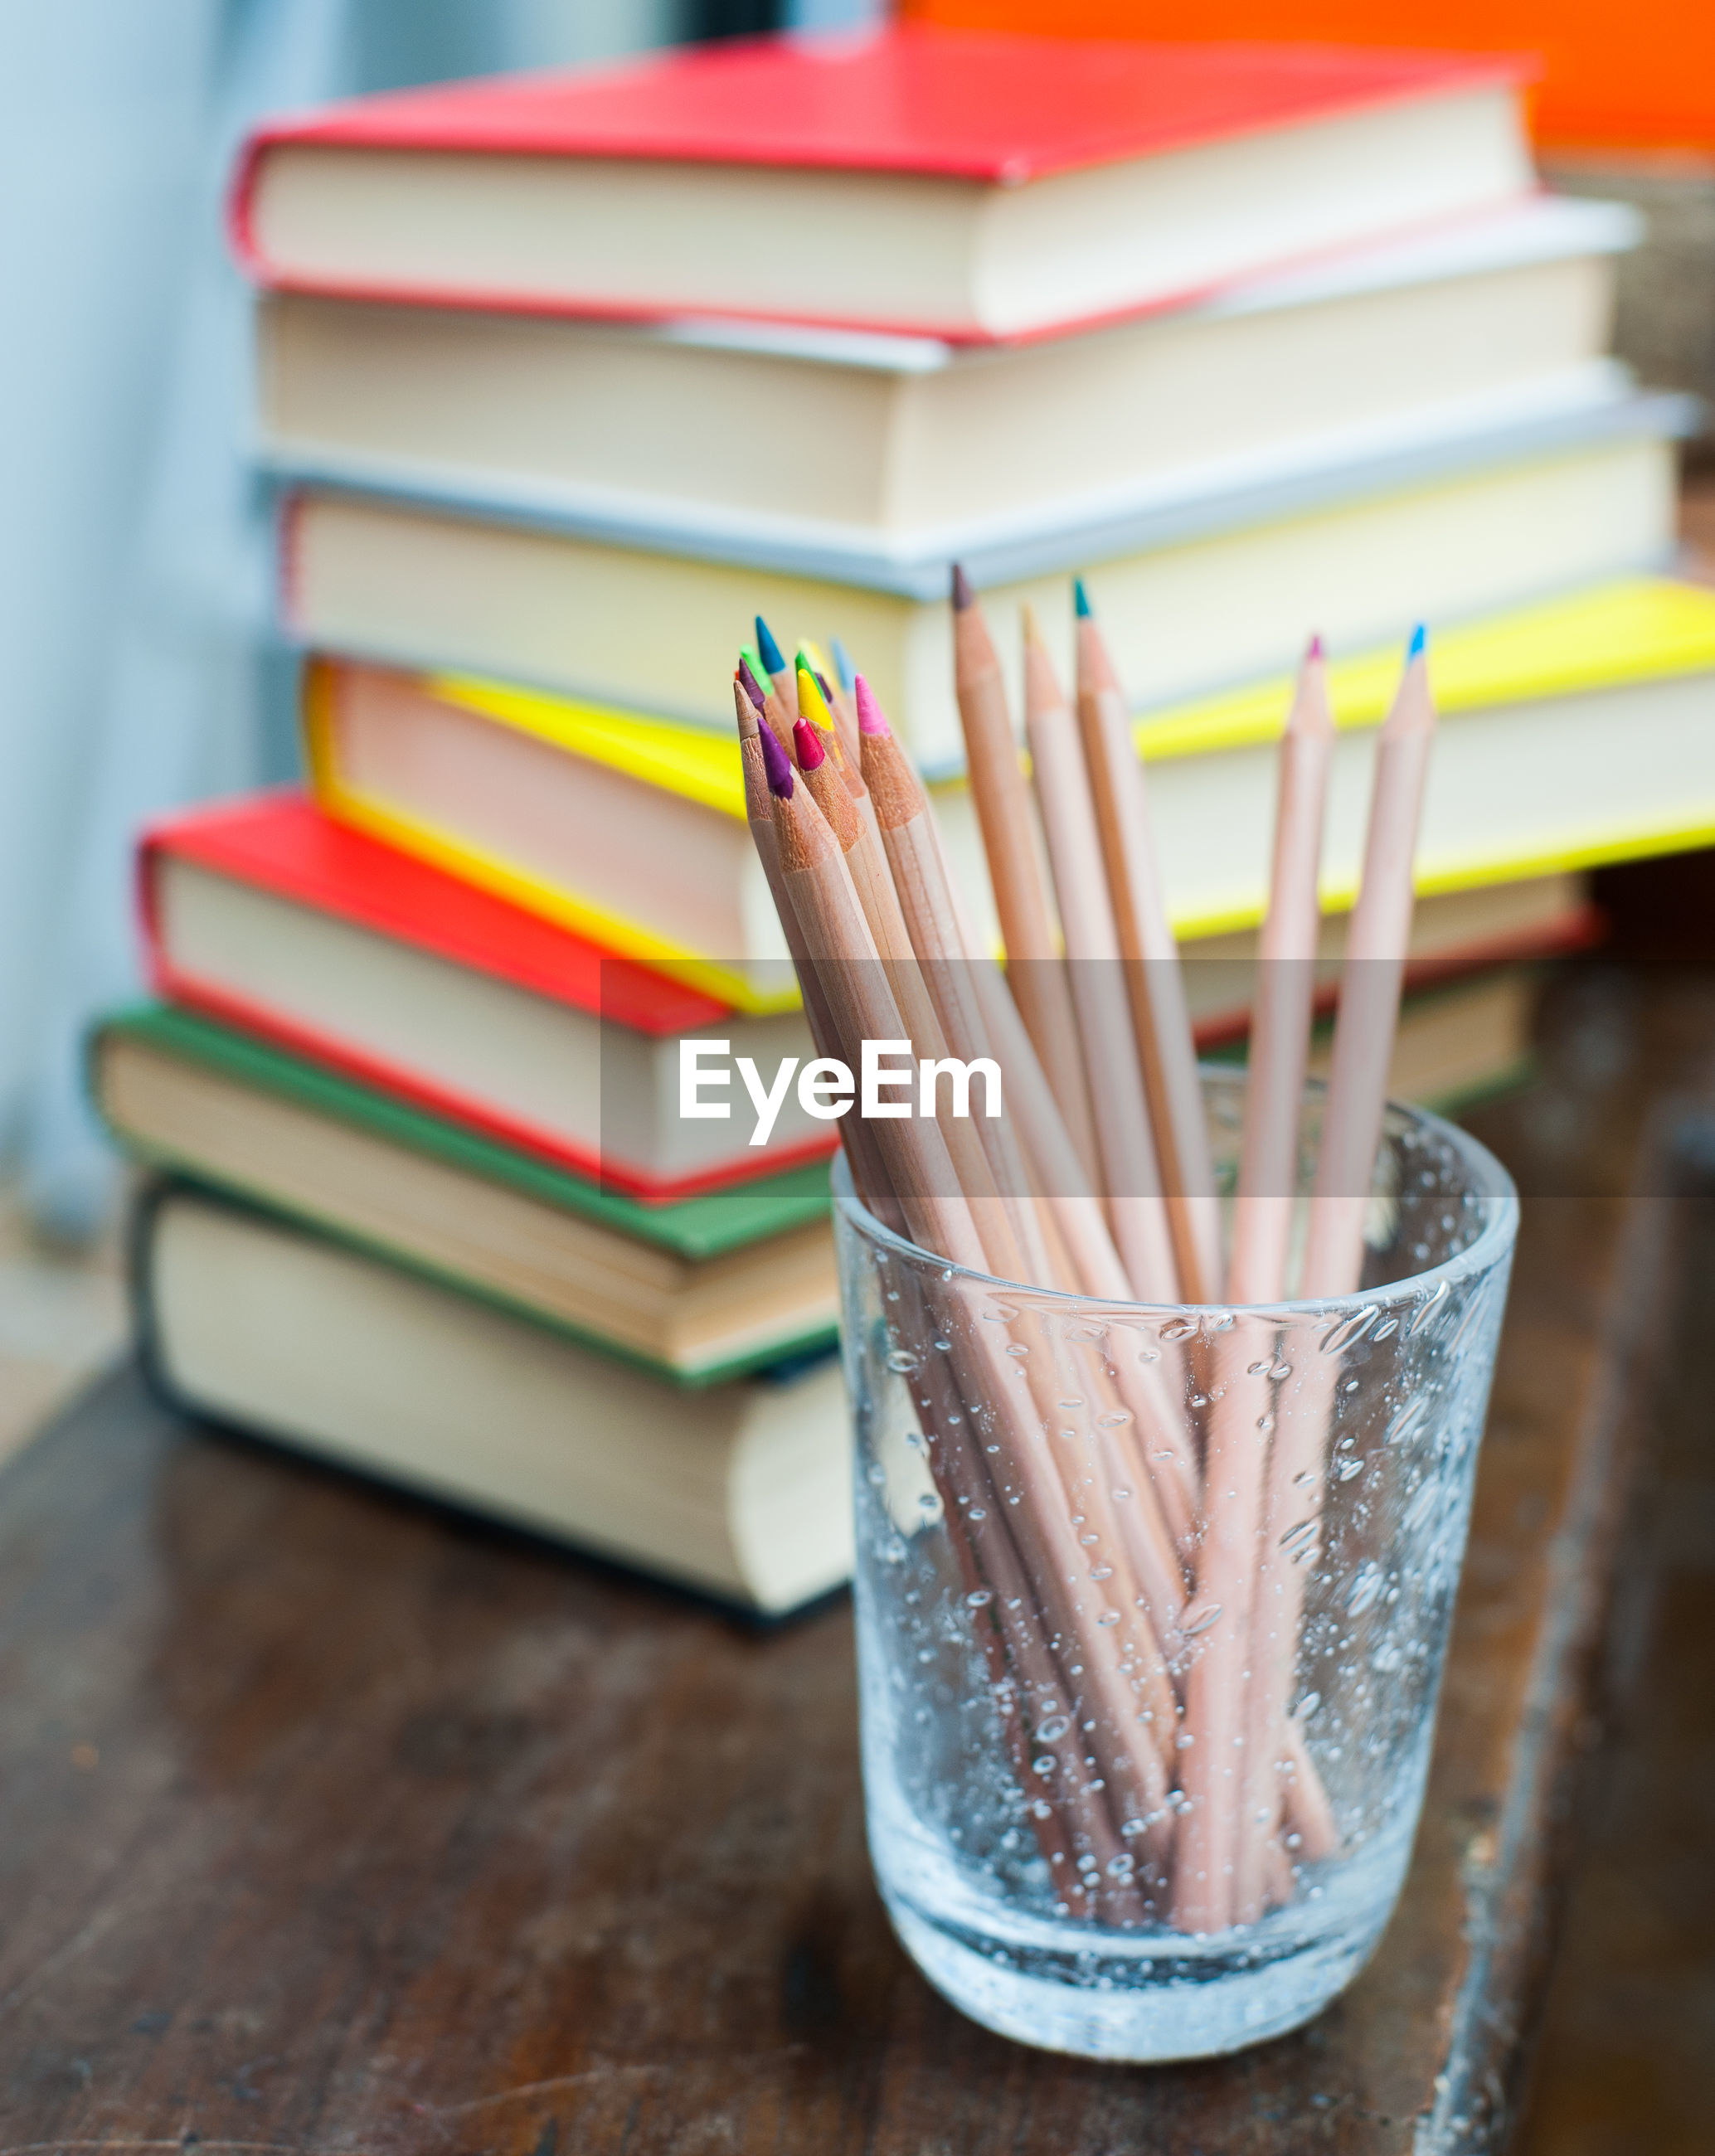 Close-up of colored pencils in glass by stacked books on table